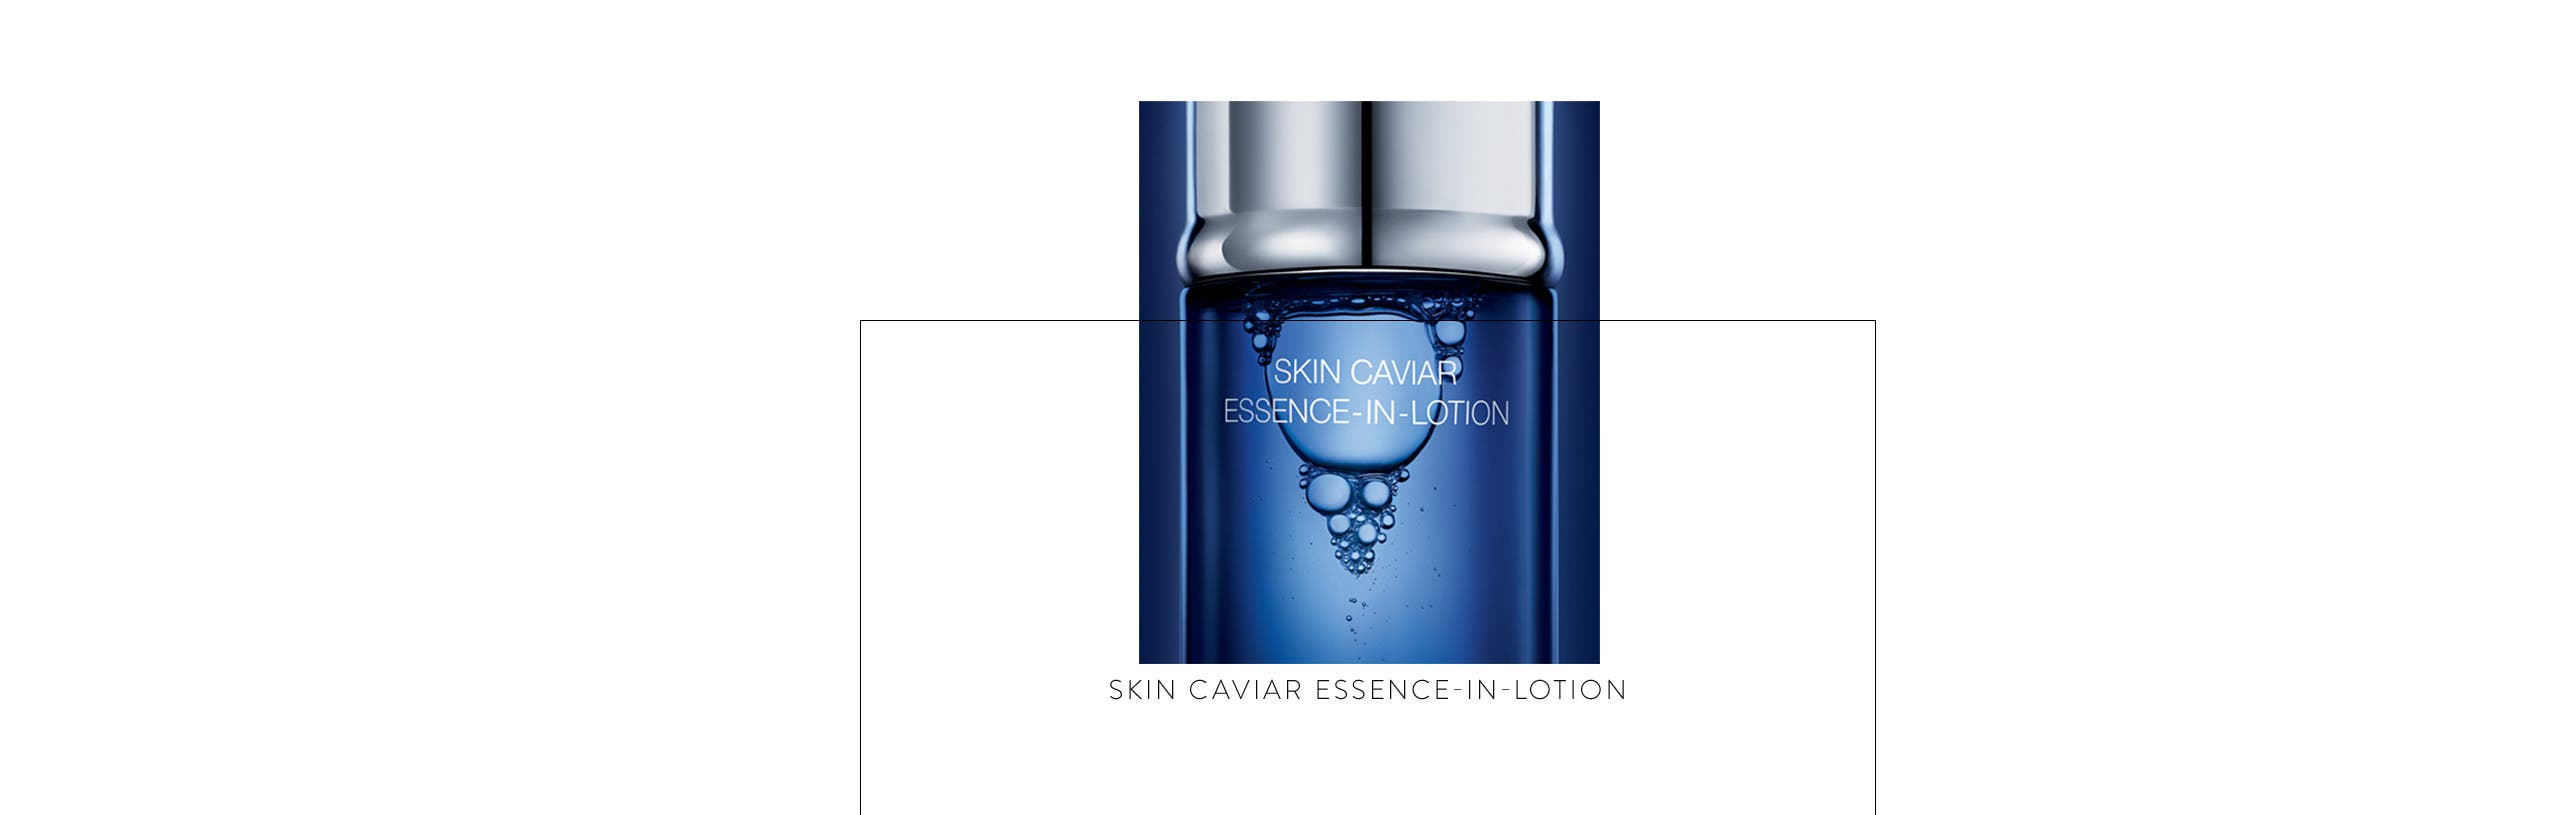 Skin Caviar Essence-in-Lotion.